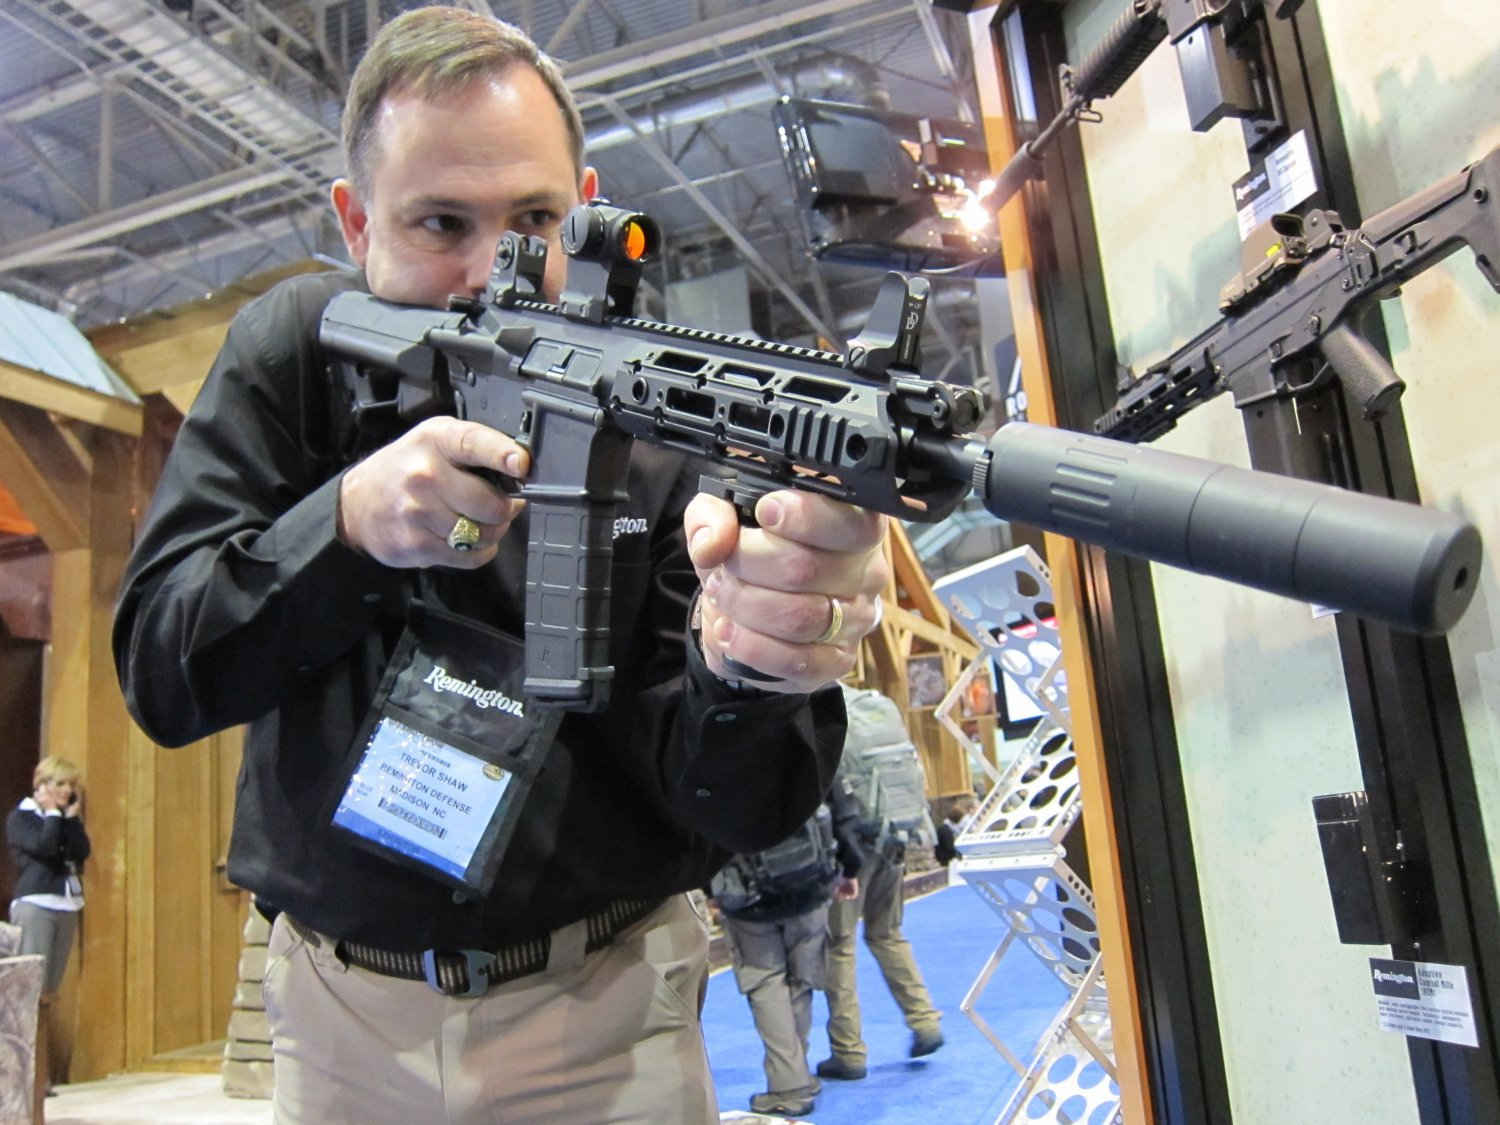 SHOT Show 2010 Remington Military R4 Gas Piston Op Rod AR 5.56mm 5 Remington Military R 4 Gas Piston Carbine (GPC) Tactical AR Carbine with Proprietary Monolithic Rail System (Pics!)